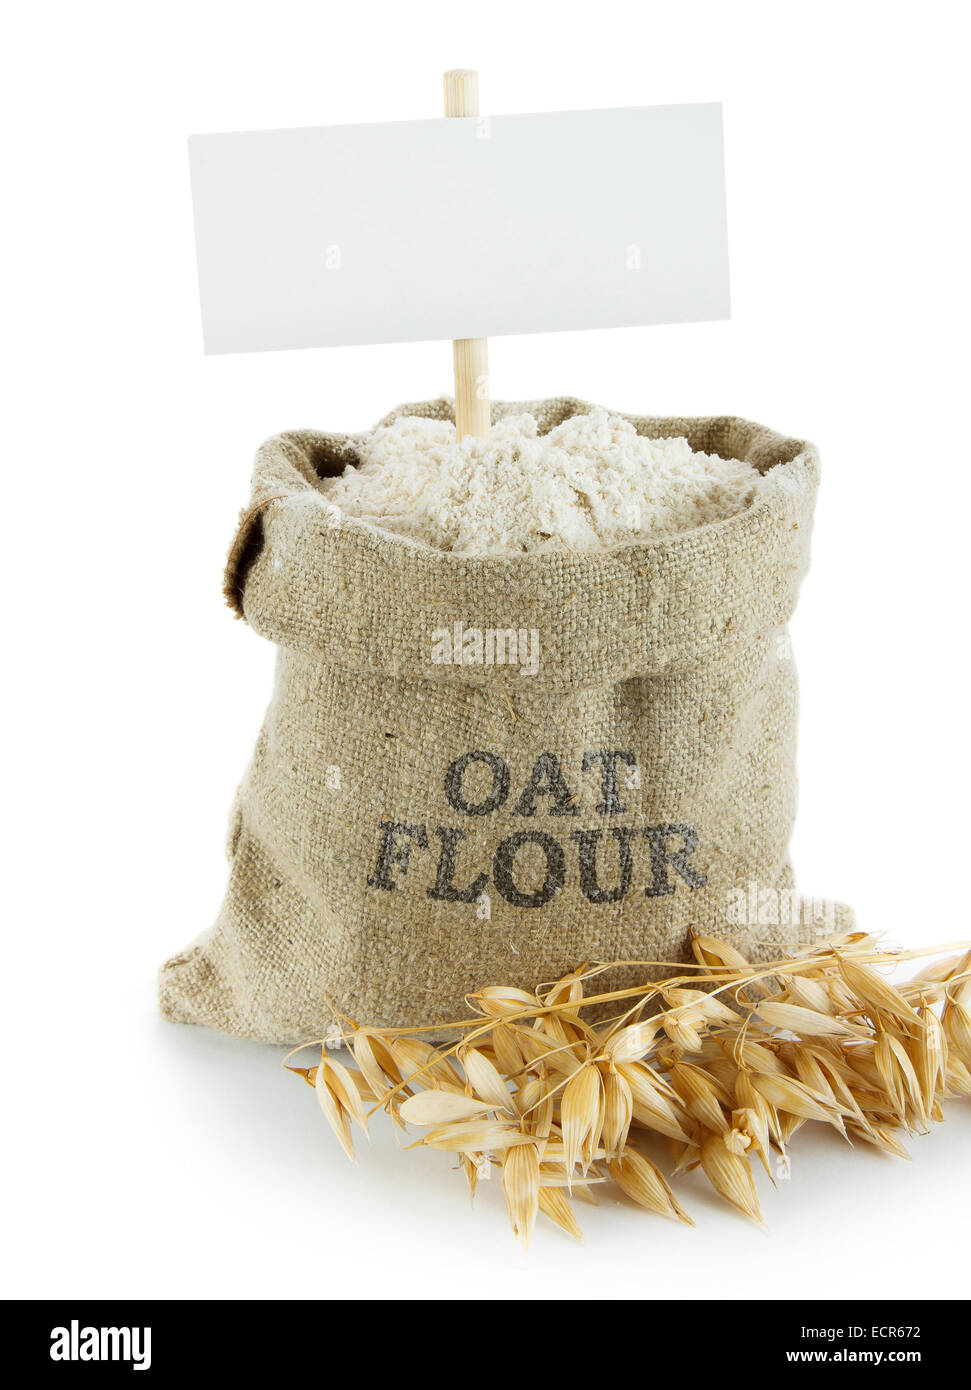 Oat flour in small linen sack. Empty space for your text - Stock Image